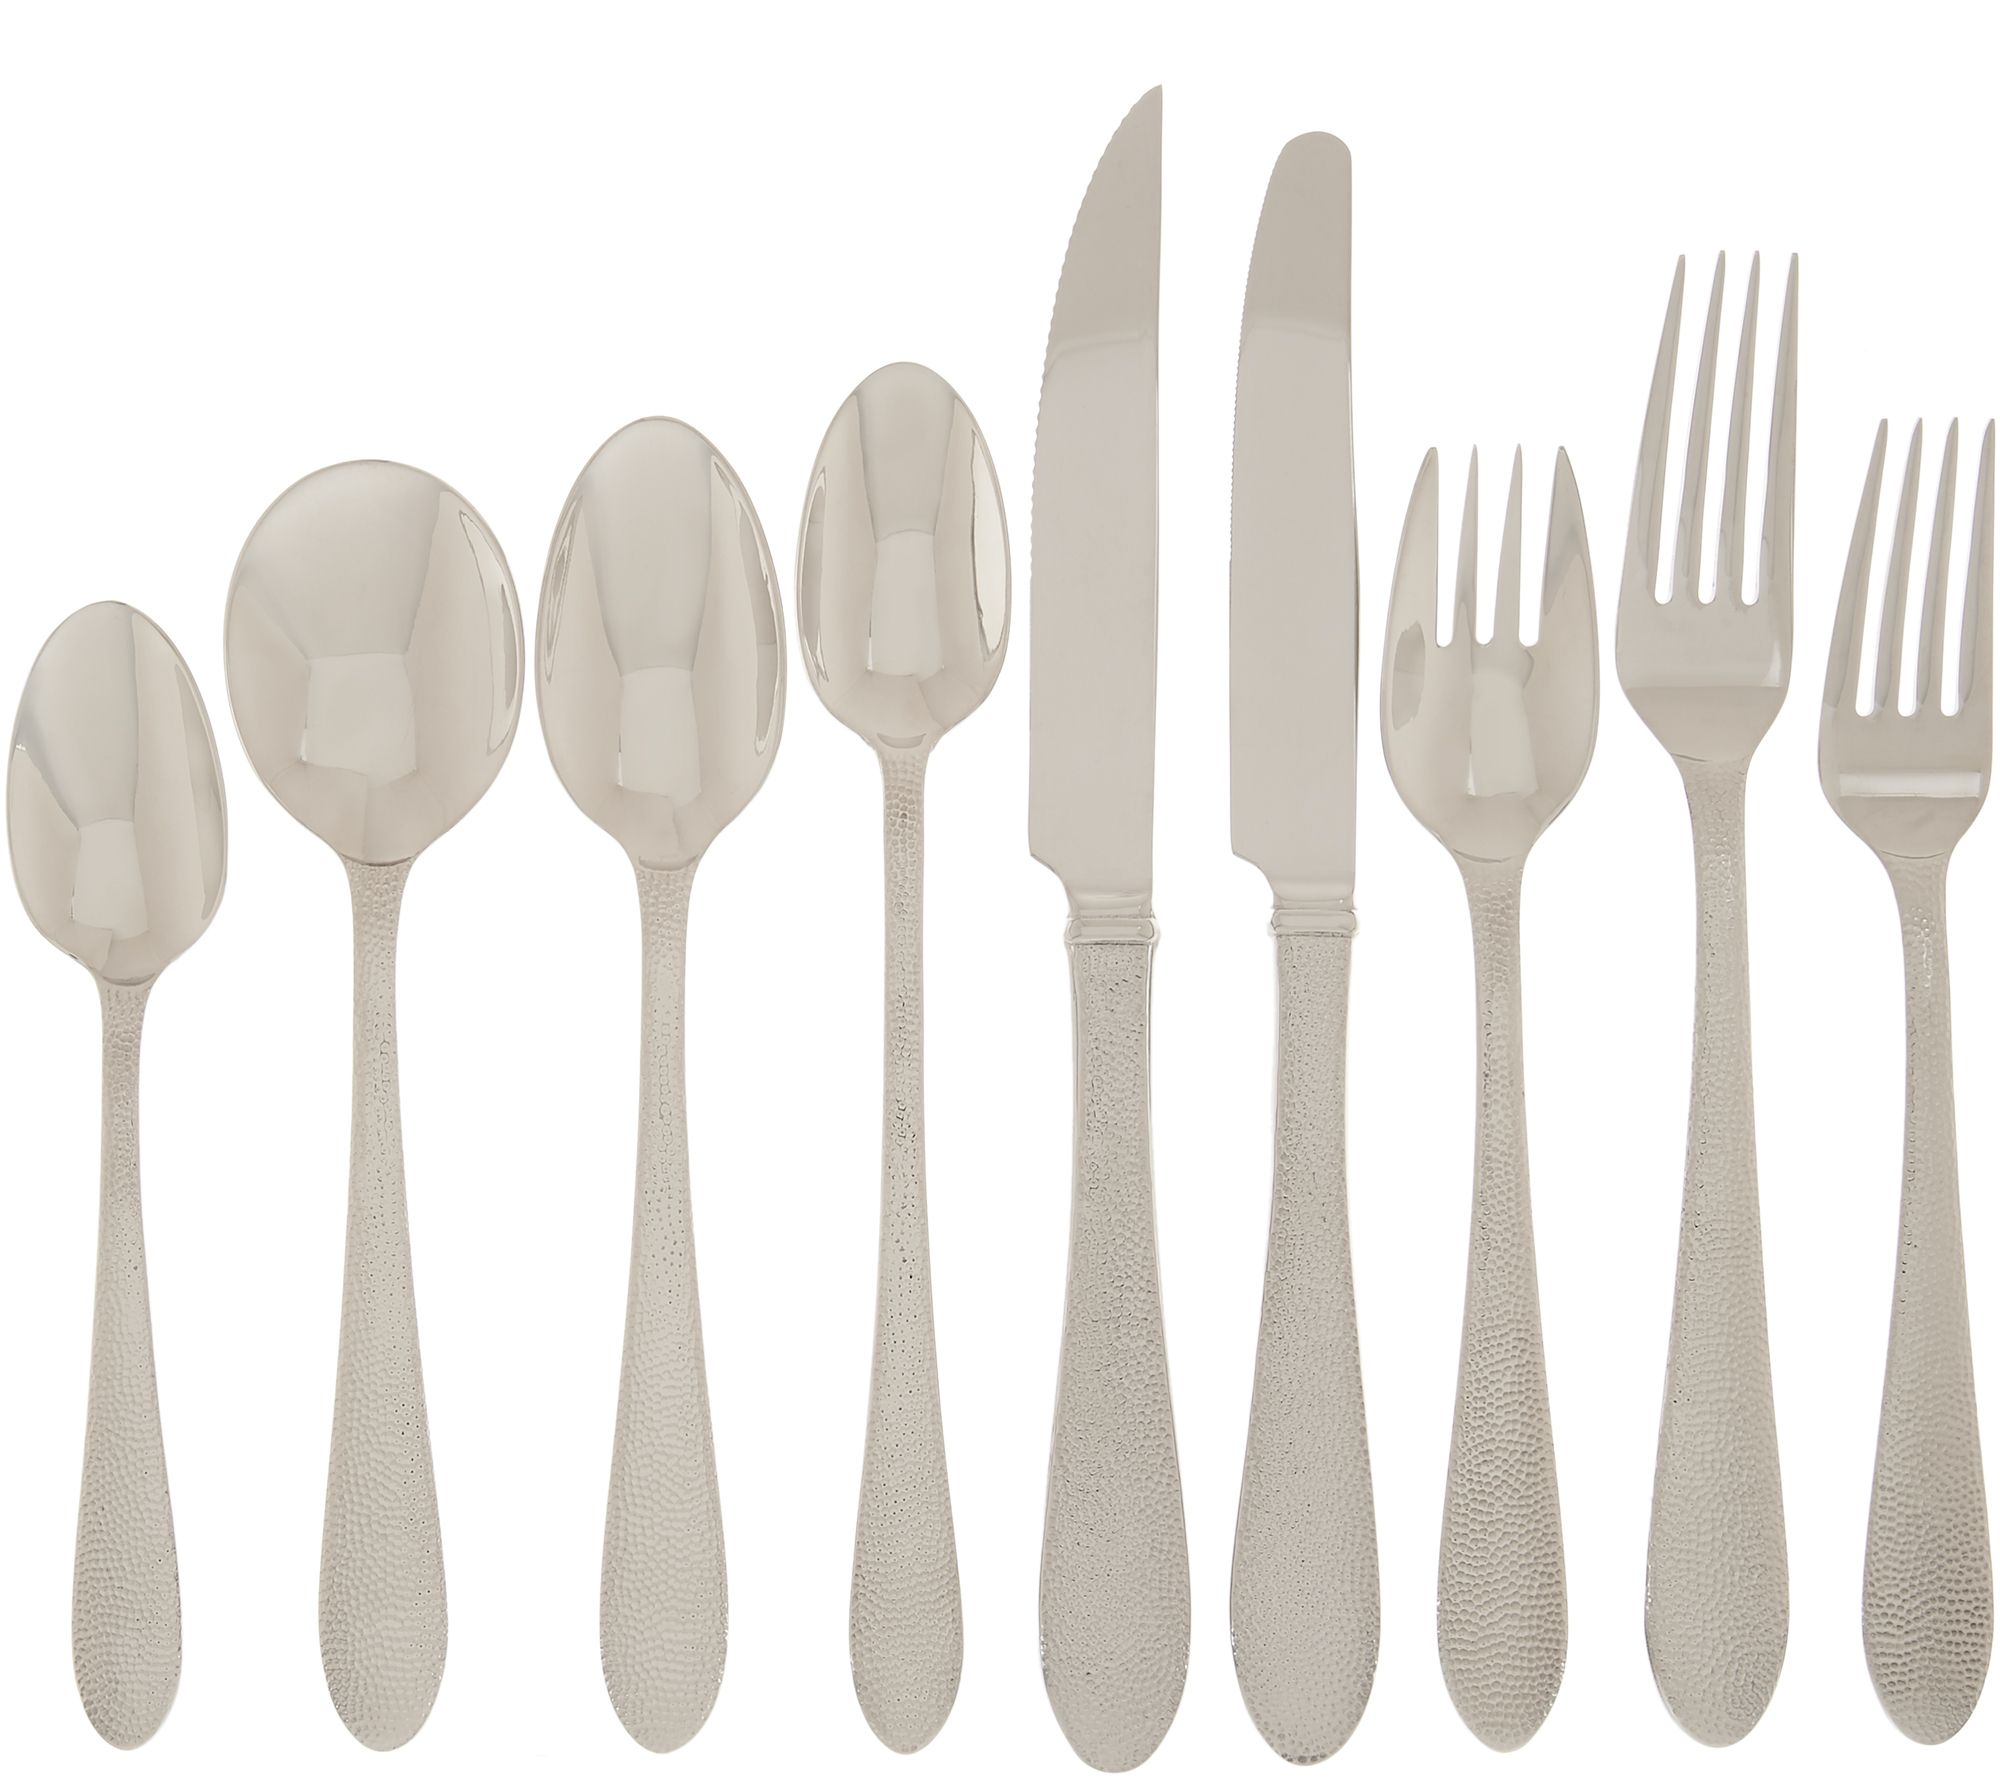 Used Flatware For Sale Lenox 18 10 Stainless Steel 112 Piece Flatware Set Qvc